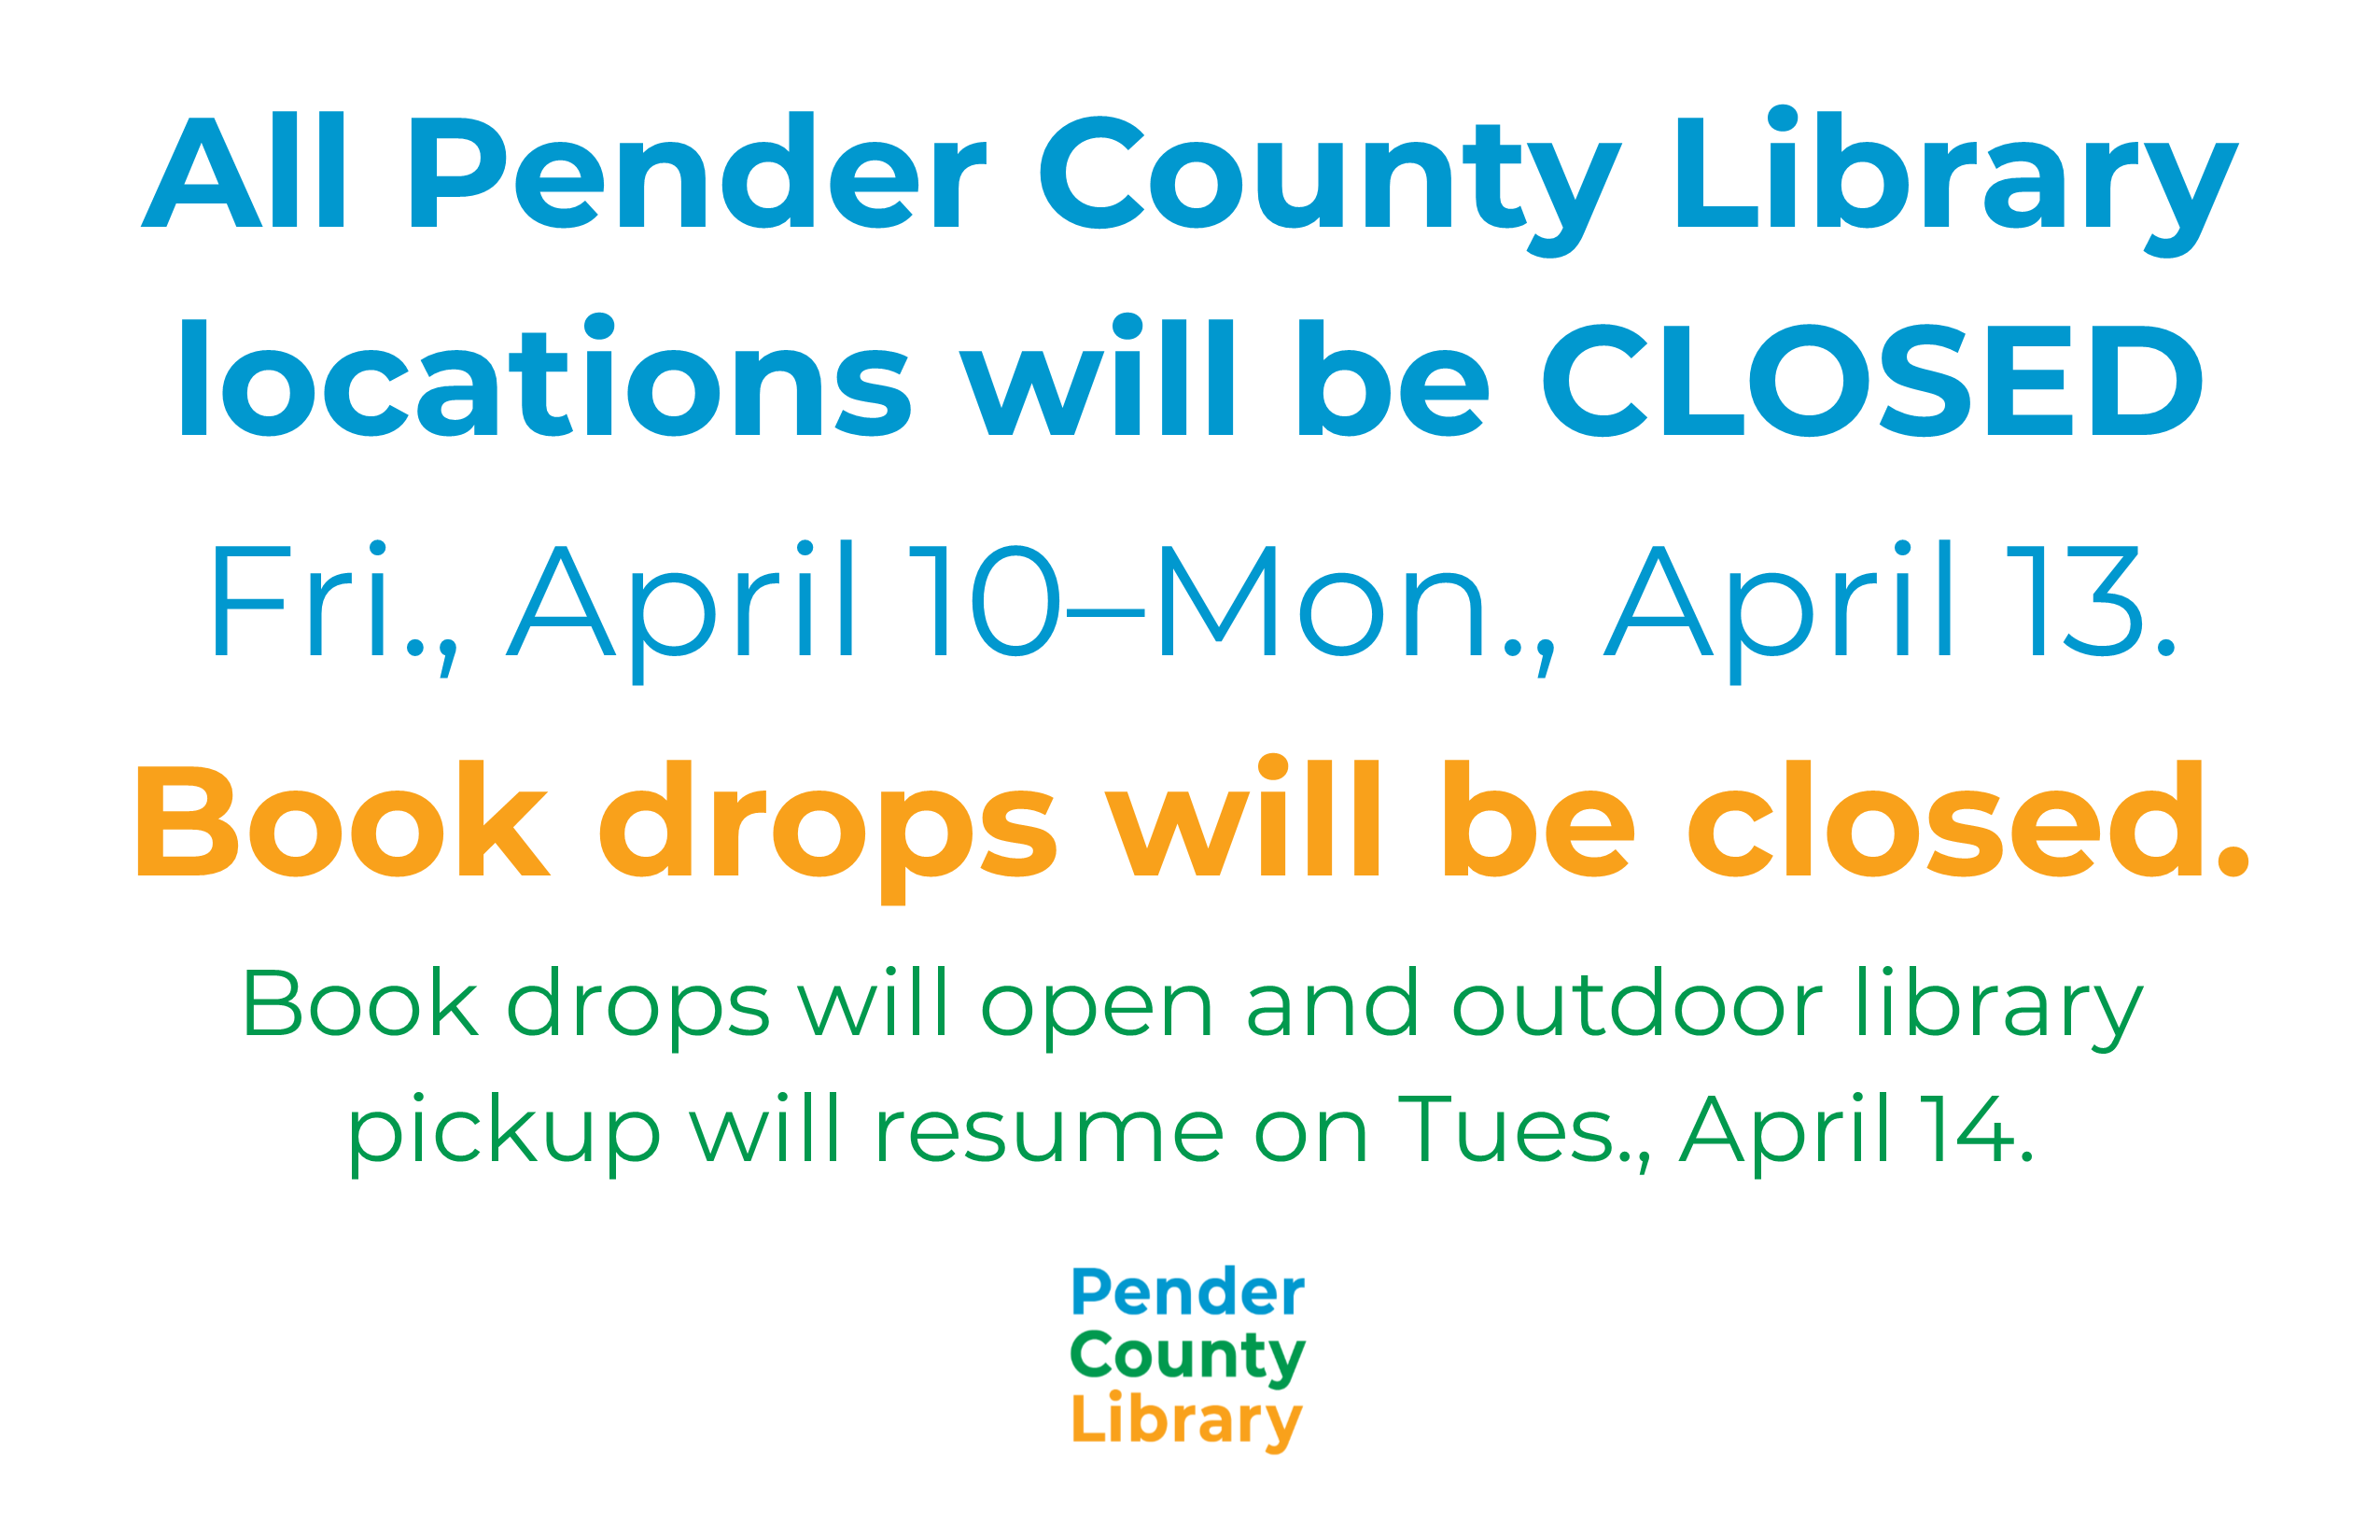 All Pender County Library locations will be CLOSED Friday, April 10 through Monday, April 13. Book drops will be closed. Book drops will open and outdoor library pickup will resume on Tues., April 14.